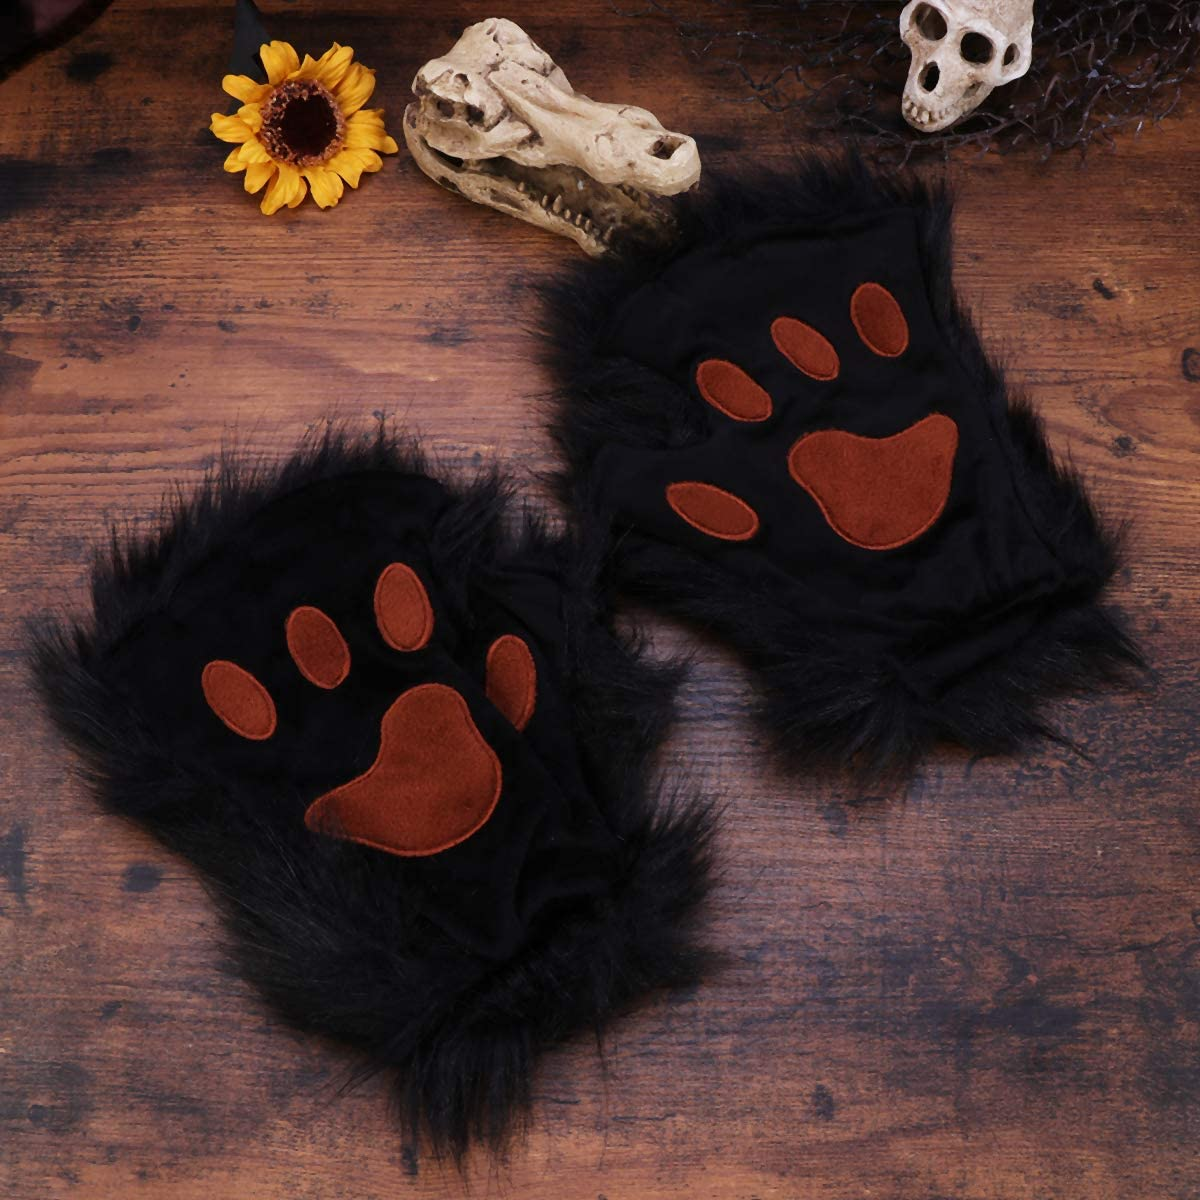 Amosfun A Pair of Black Halloween Faux Fur Long- haired Animal Gloves Animal Paws Mittens Winter Warm Half- finger Gloves